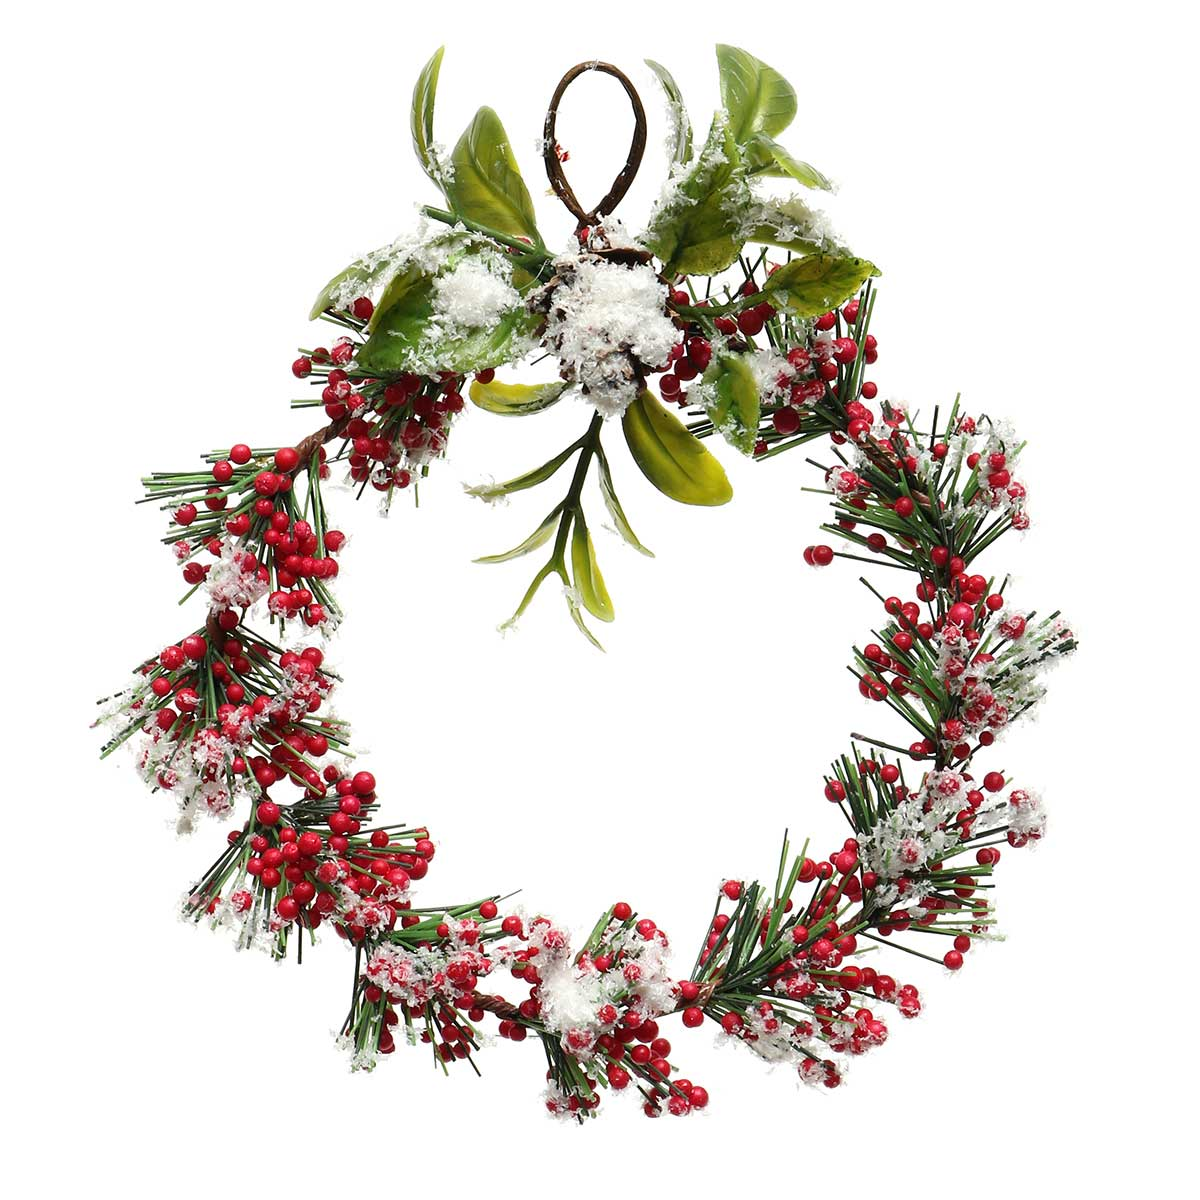 WINTER RED BERRY WREATH ORNAMENT AMENT